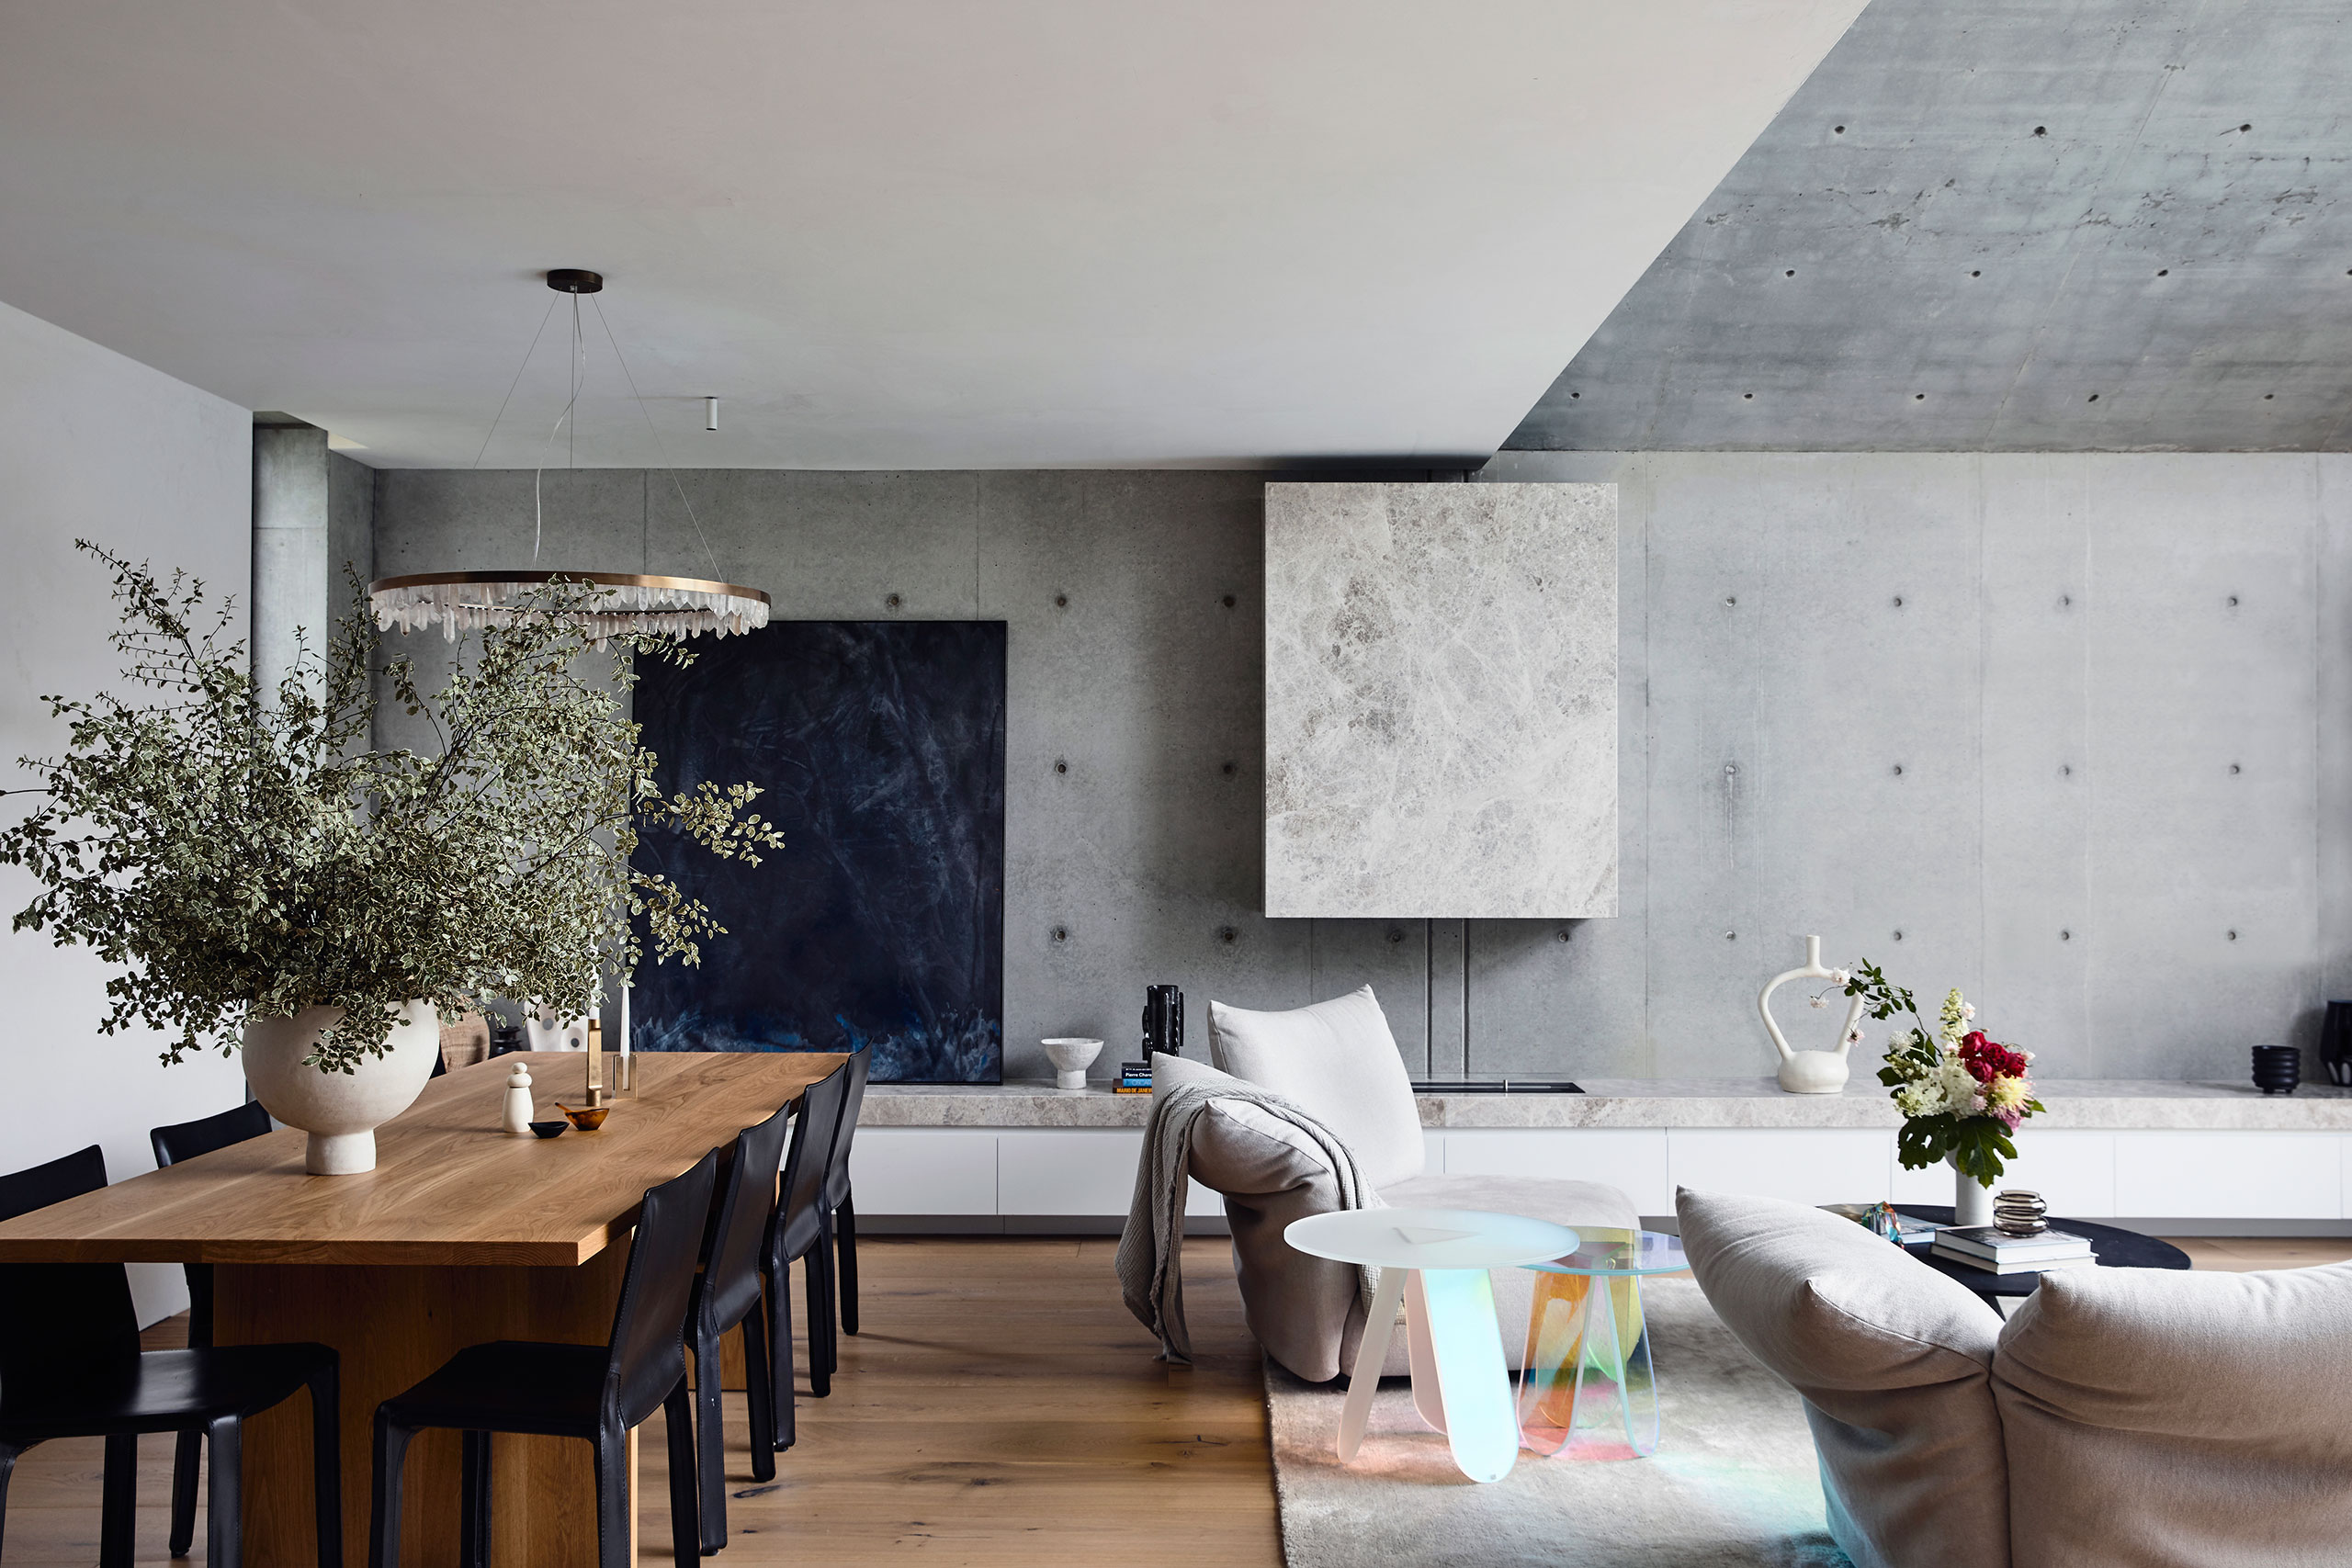 Scandizzo House by Pete Kennon of Kennon+ studio. Photo by Derek Swalwell. Photoshoot styling by Room on Fire.